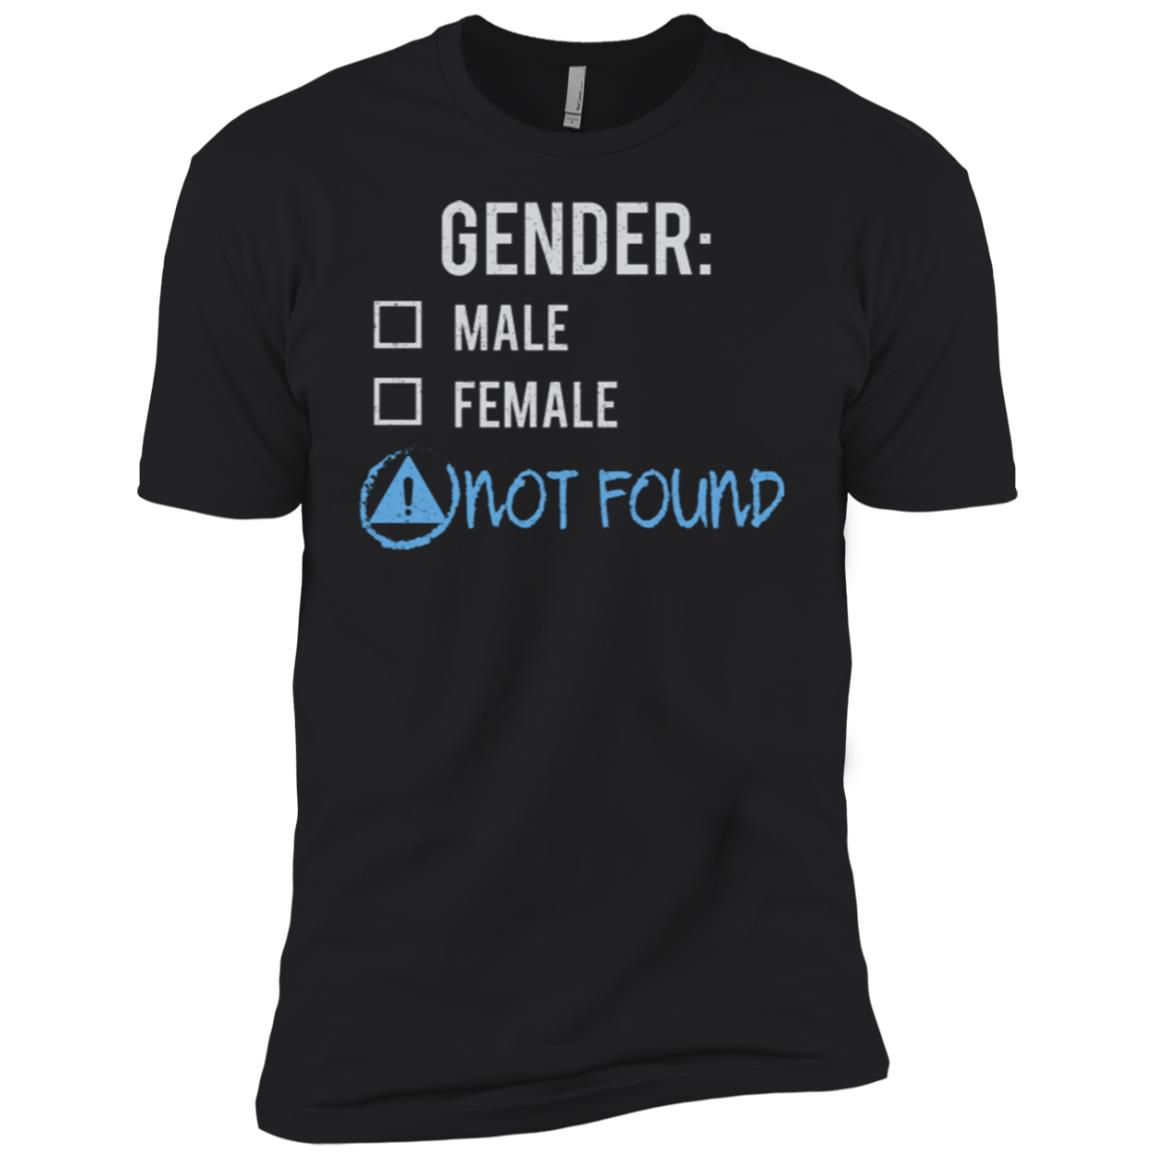 Male Female Not Found Gender Nonbinary Trans Men Short Sleeve T-Shirt